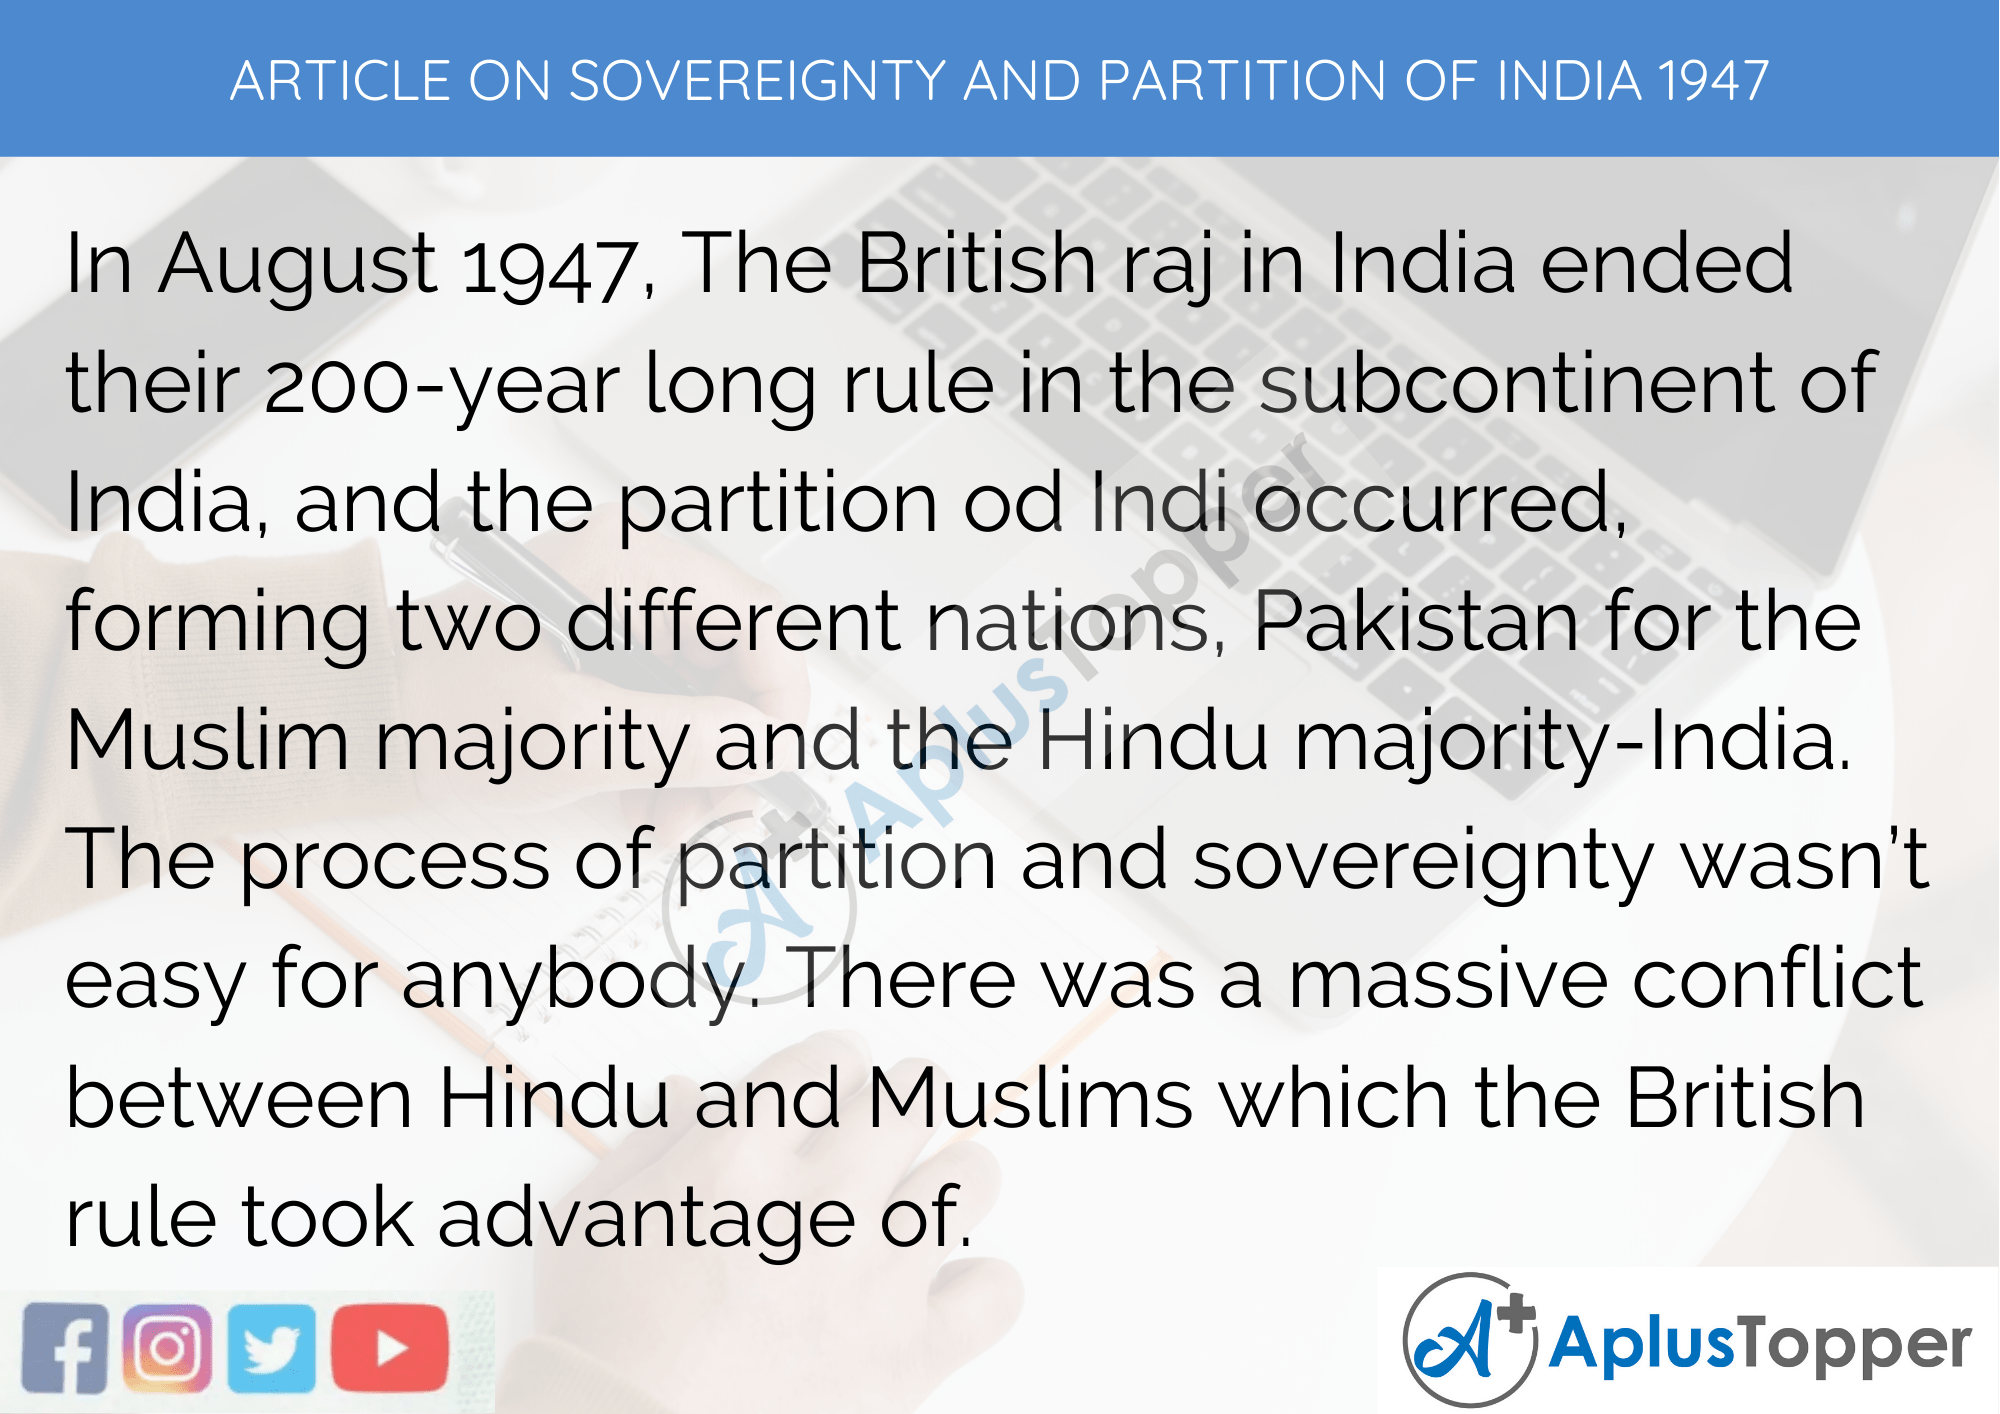 Short Article On Sovereignty And Partition Of India 1947 300 Words in English